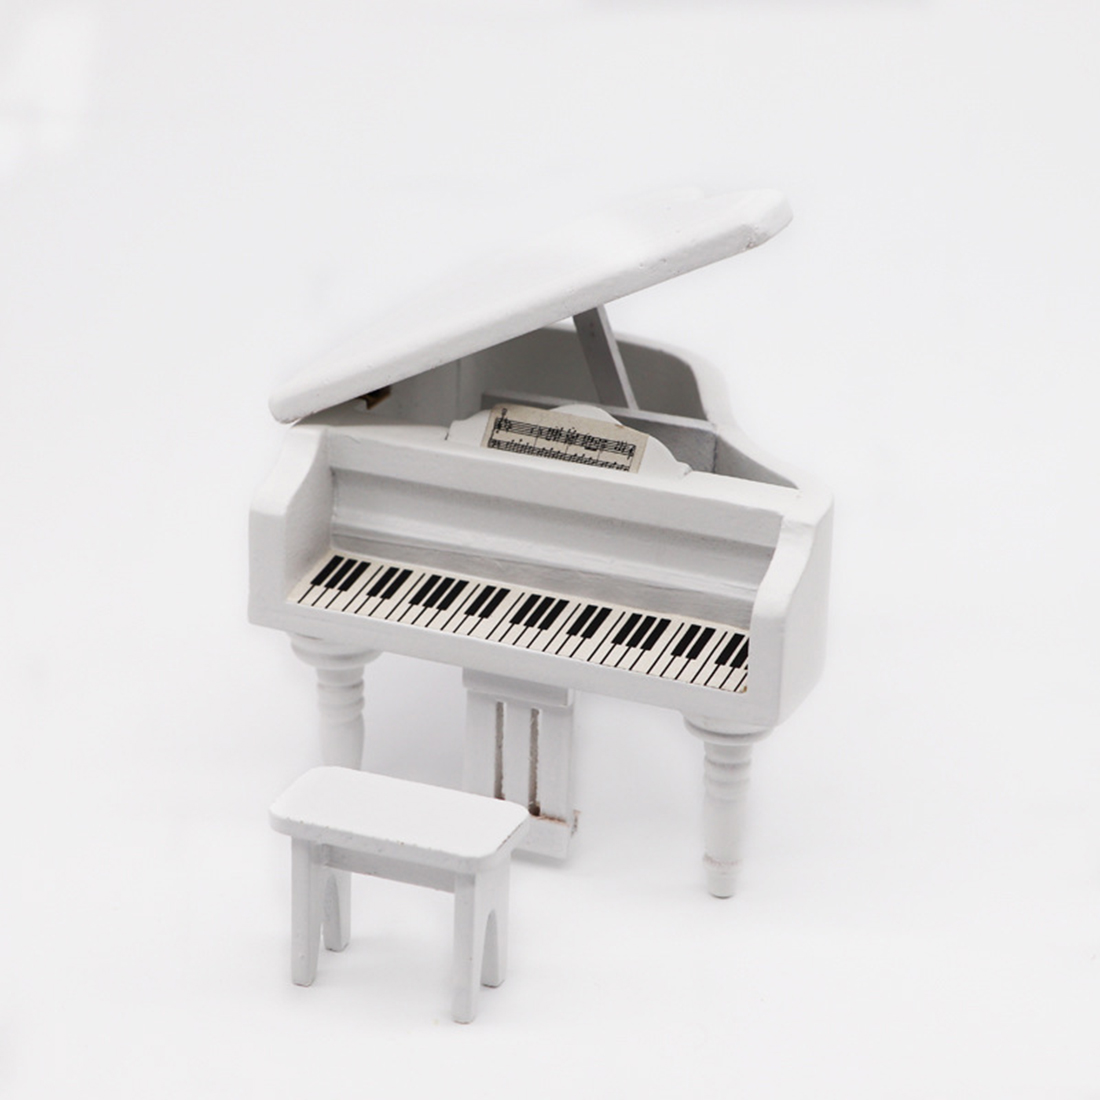 1/12 Scale Furniture Scene Props Miniature Dollhouse Grand Piano - Black